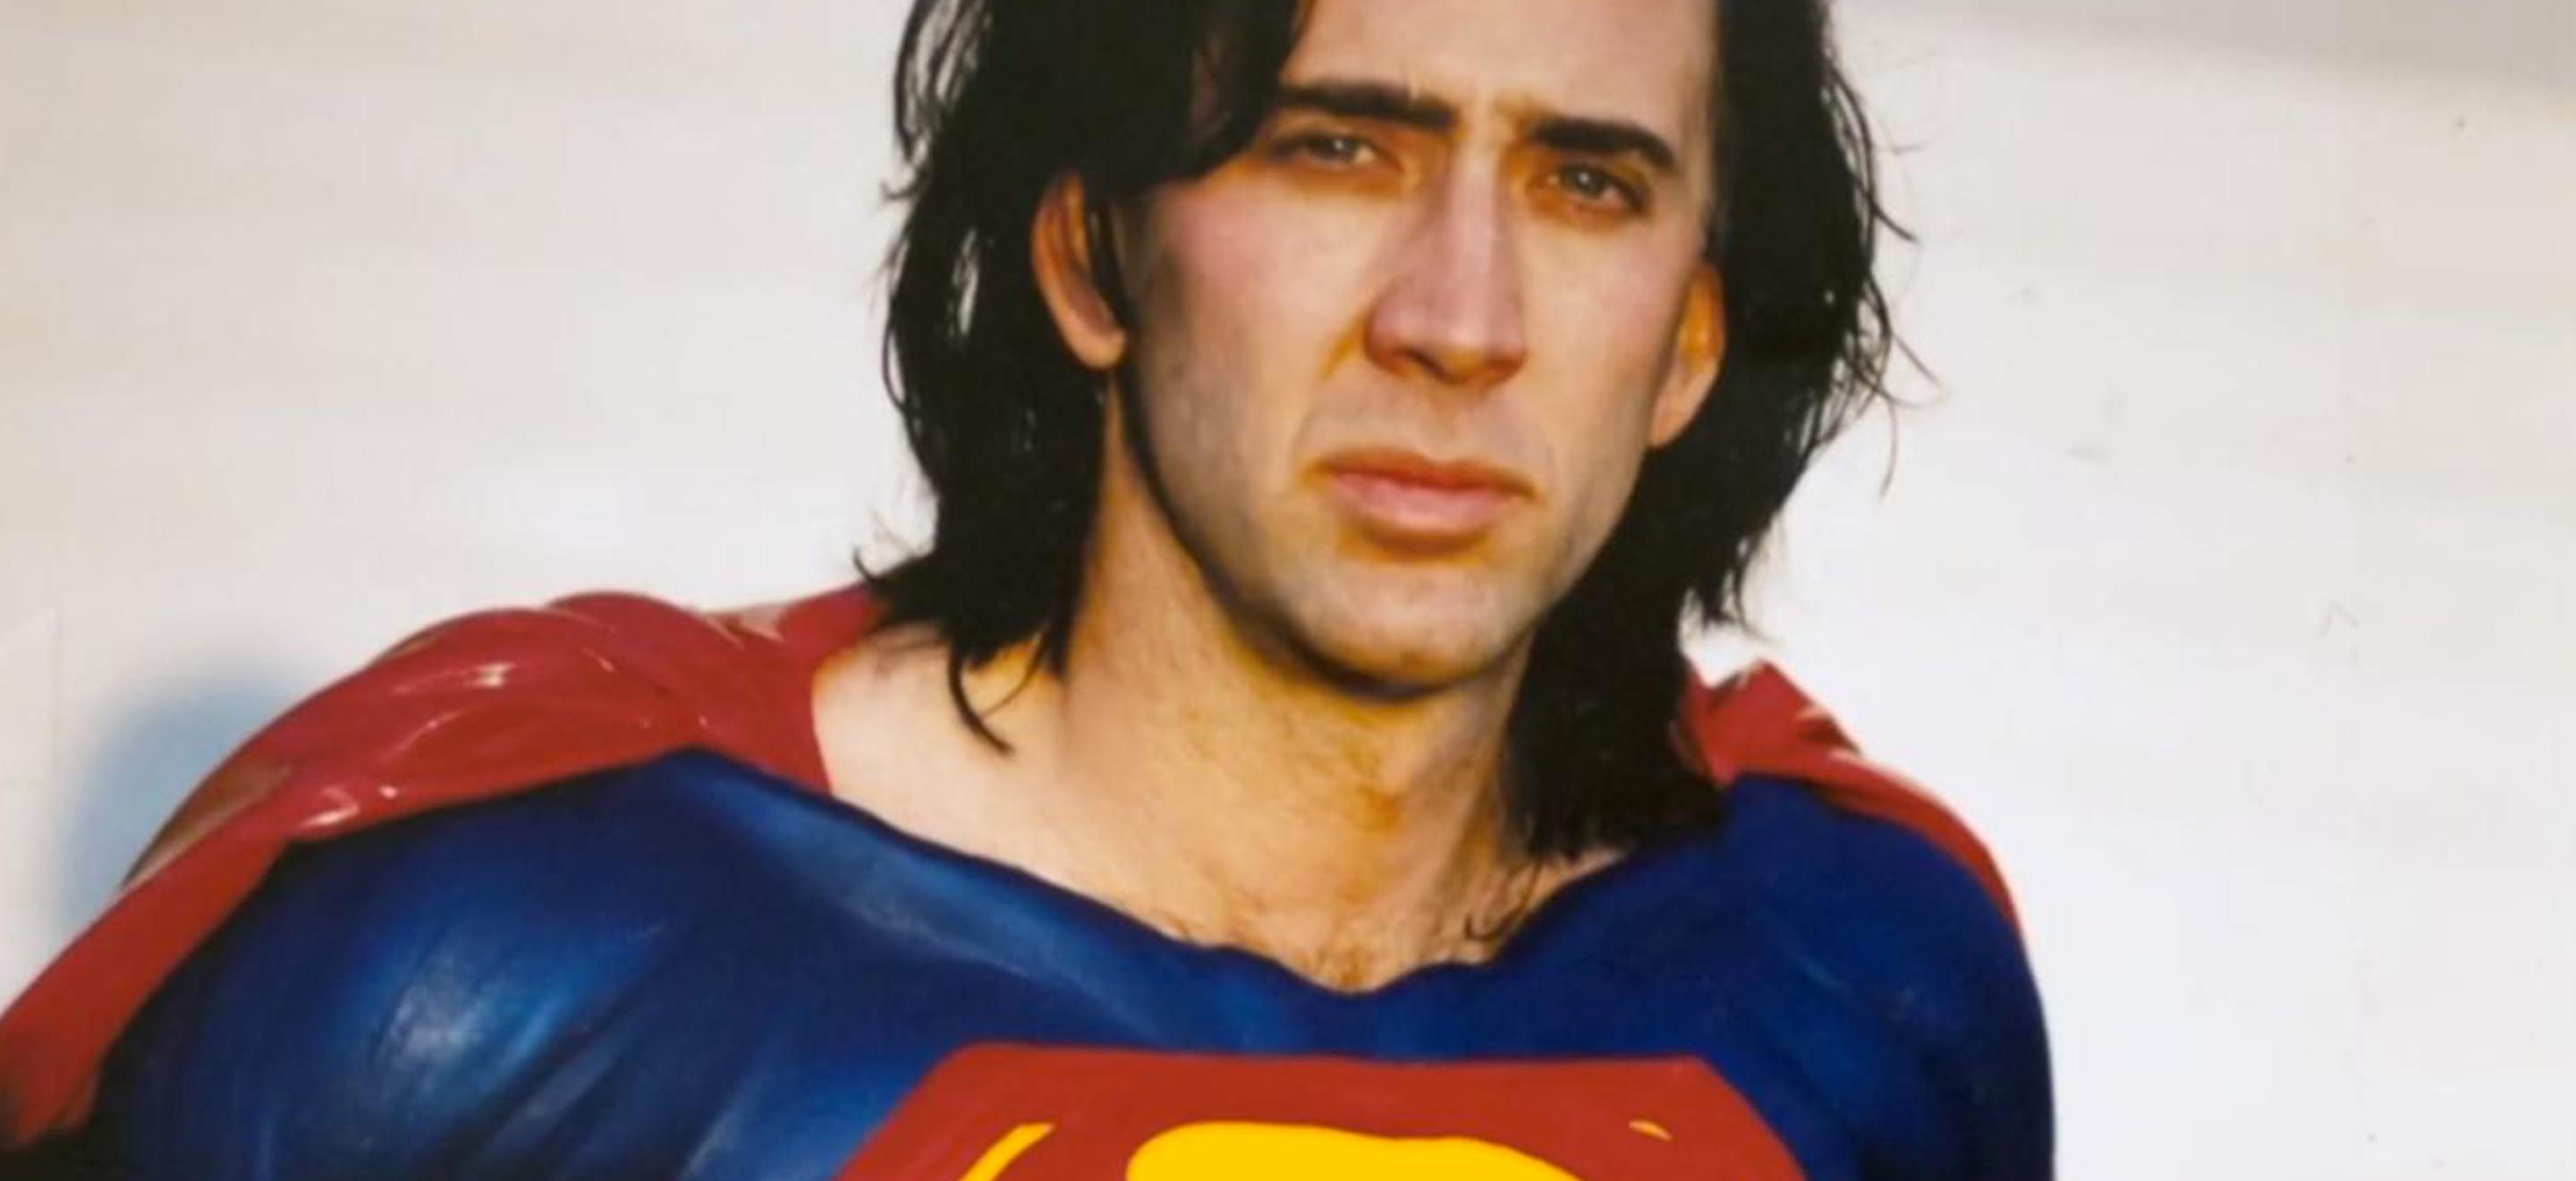 https://www.micromania.fr/on/demandware.static/-/Sites-Micromania-Library/default/dwfb4b53f6/fanzone/dossier/superman/superman-nicolas-cage.jpg